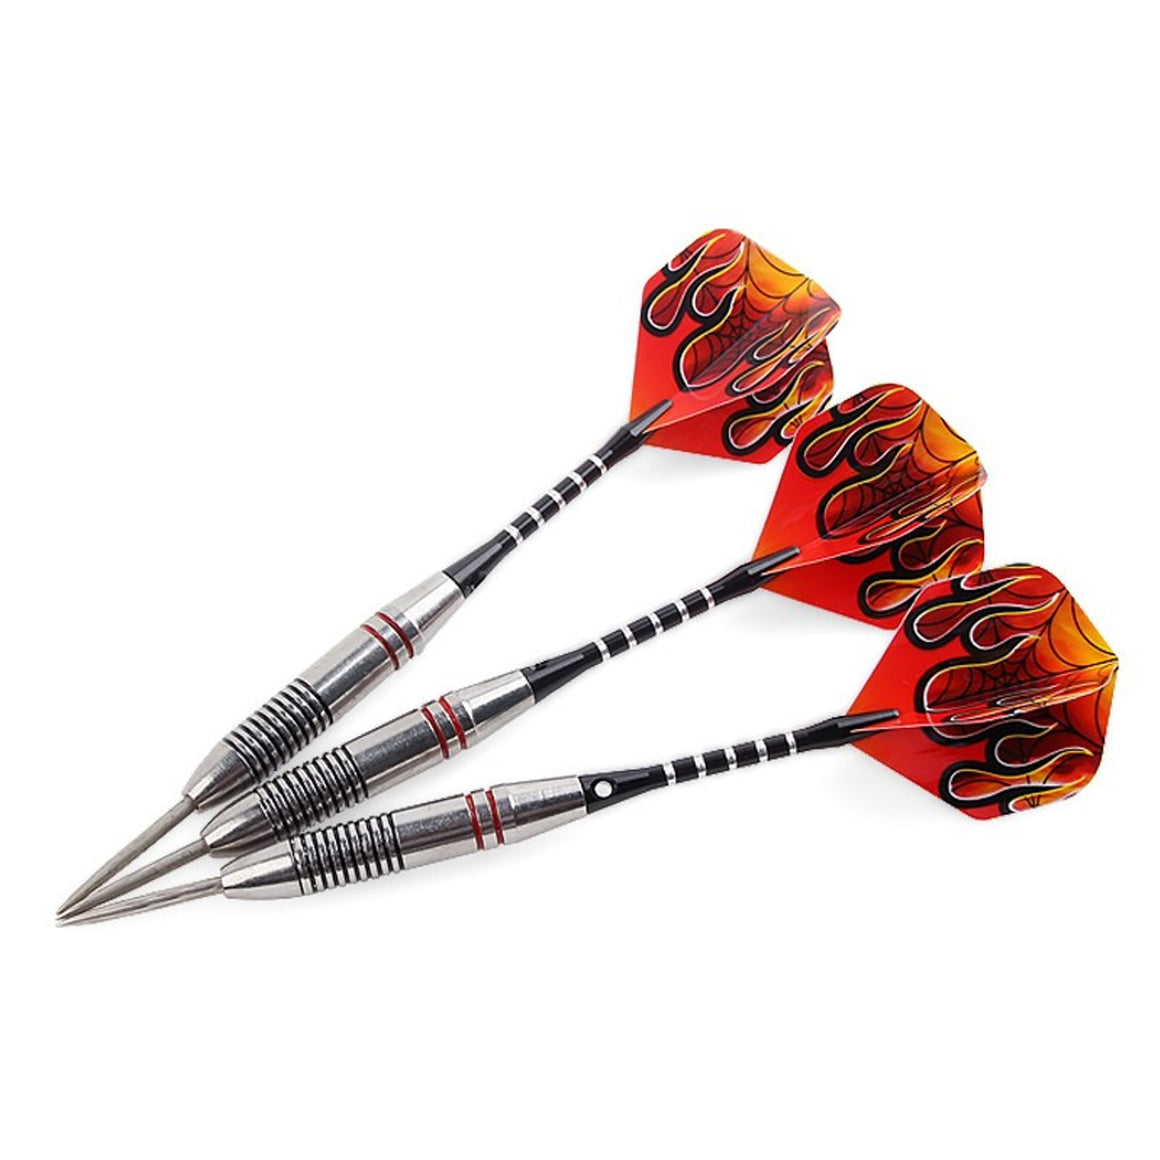 New 3 Color 3 Pcs/Sets of Darts Professional 22g Steel Tip Dart With Aluminium Shafts Nice Dart Flights High Quality